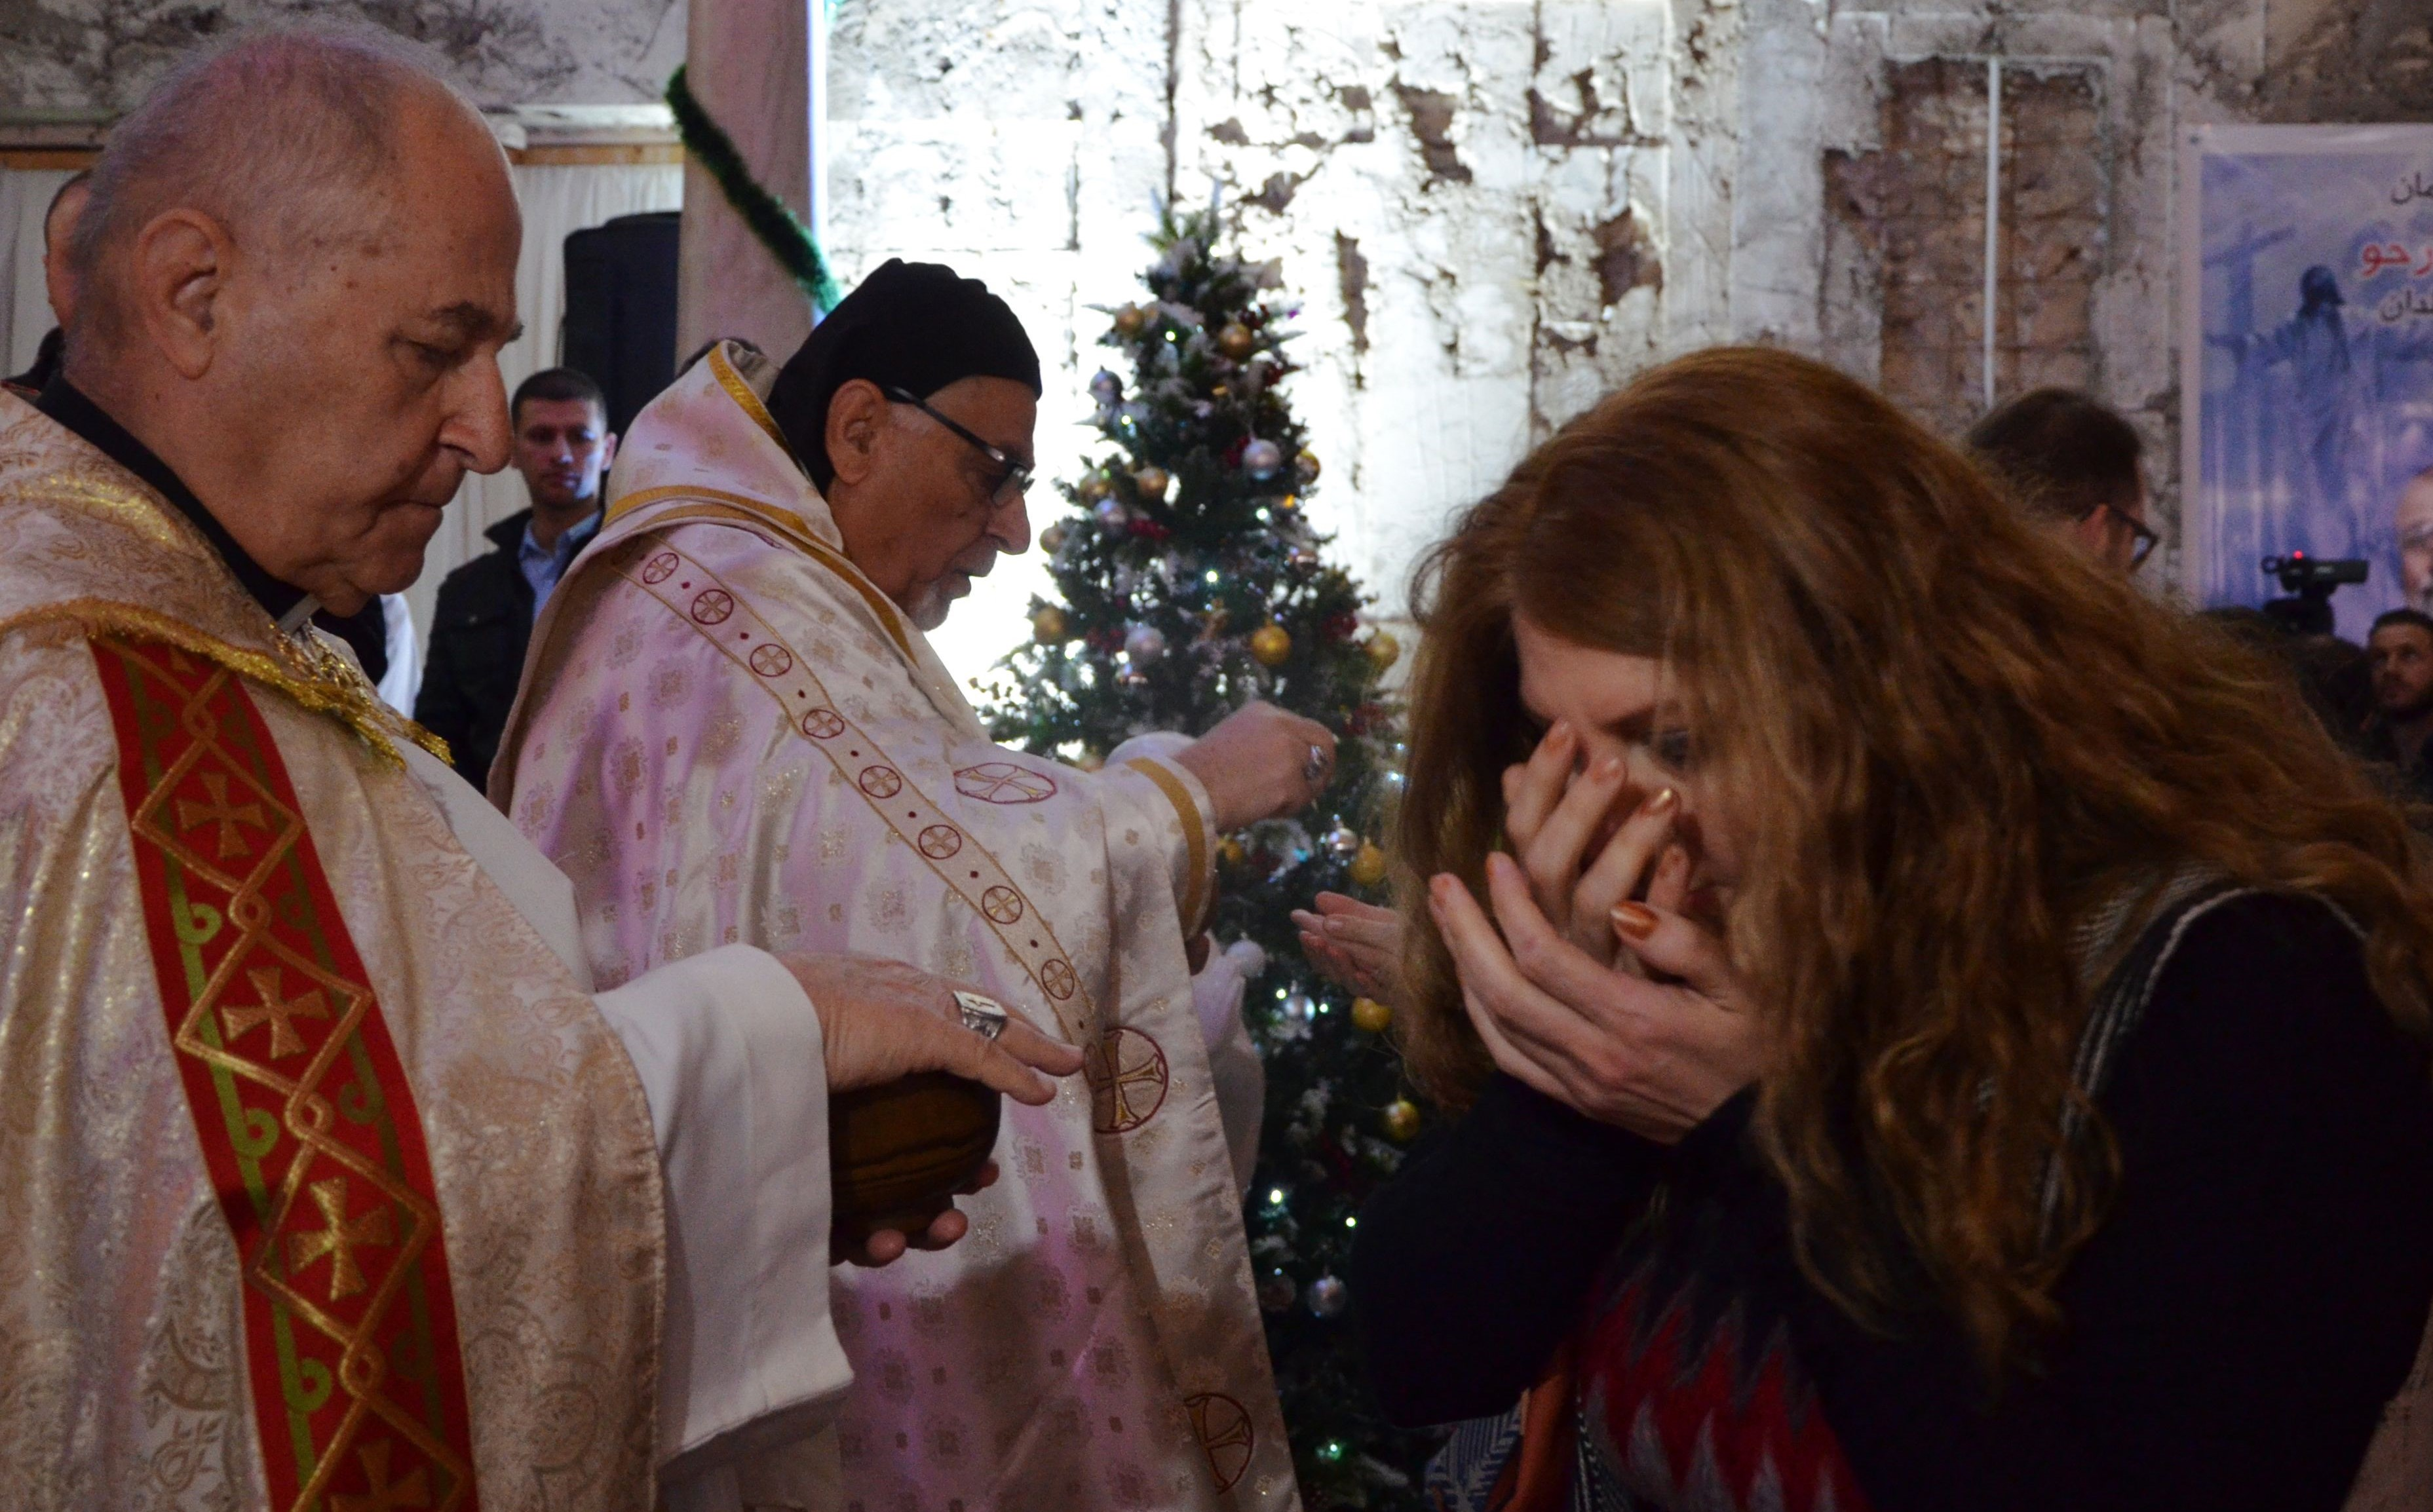 An Iraqi woman receives the Eucharist during Christmas mass at Saint Paul's church in Mosul. Photo: Ahmad Muwafaq/AFP